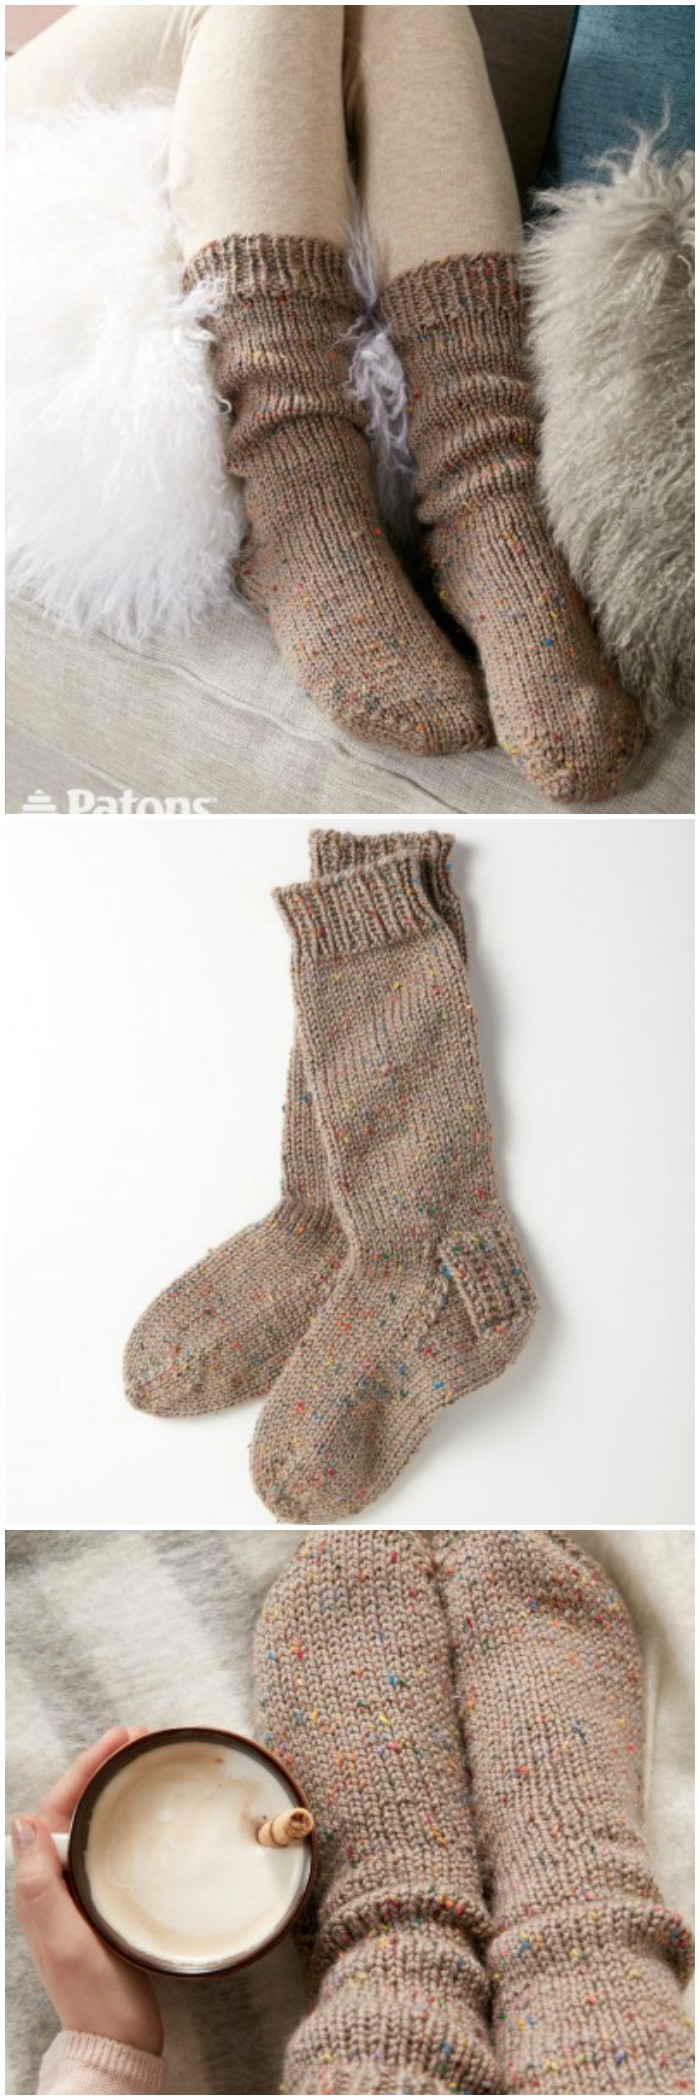 Crochet Slouchy Socks